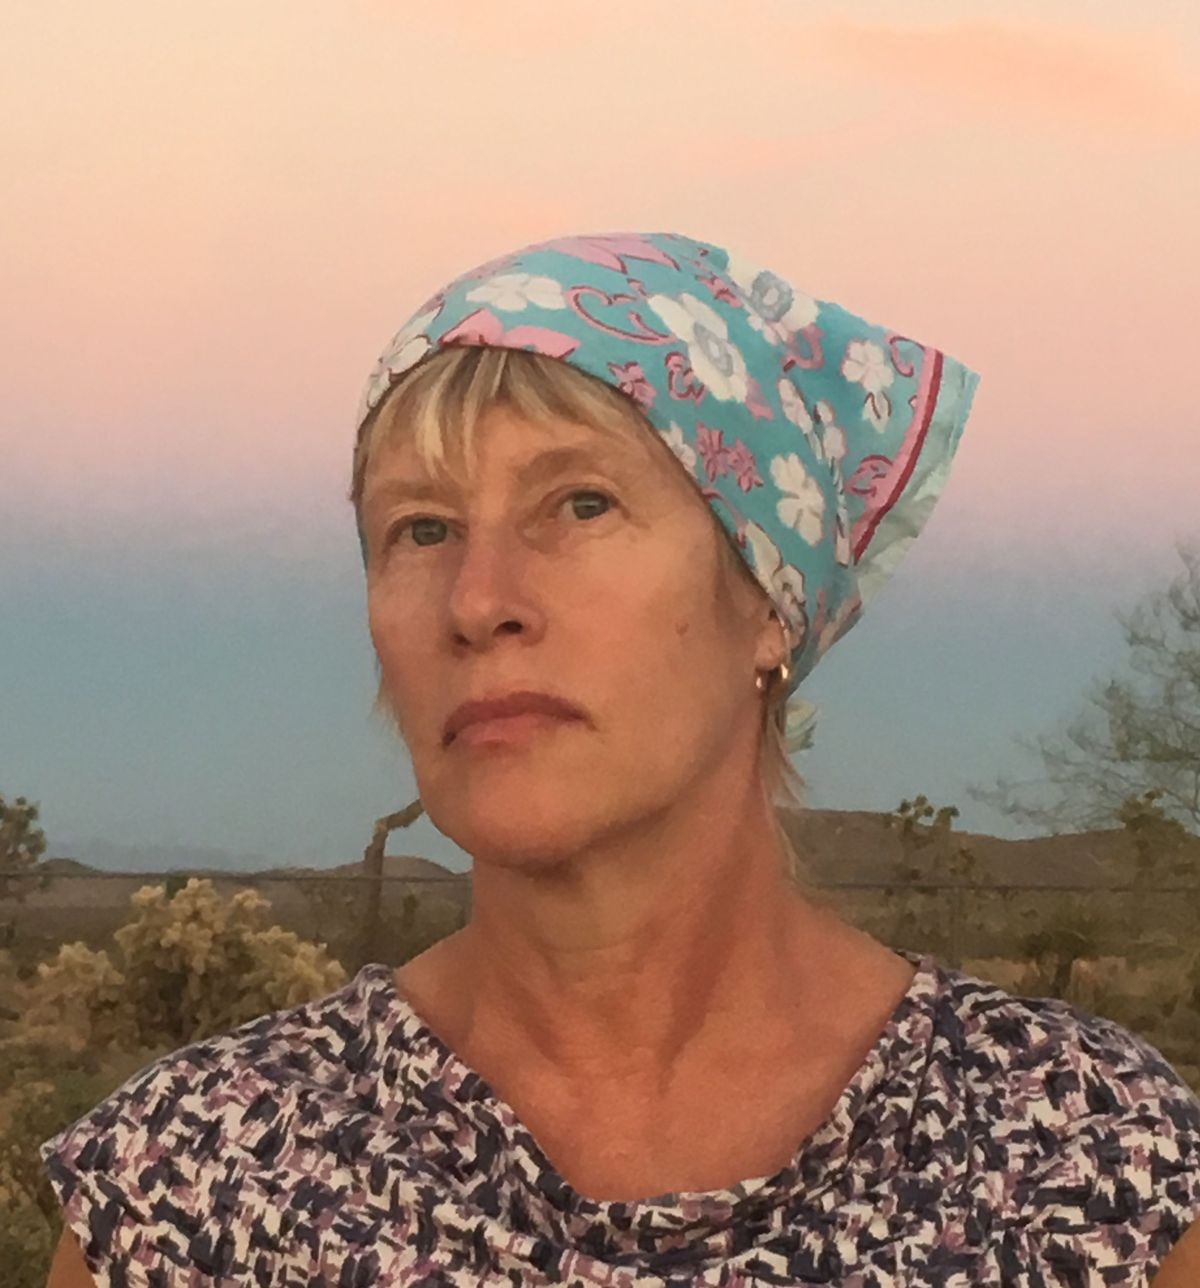 """Sally Timms on why she """"occasionally"""" attends church though she's an atheist: """"It's calming, it's very peaceful.""""   Supplied photo"""